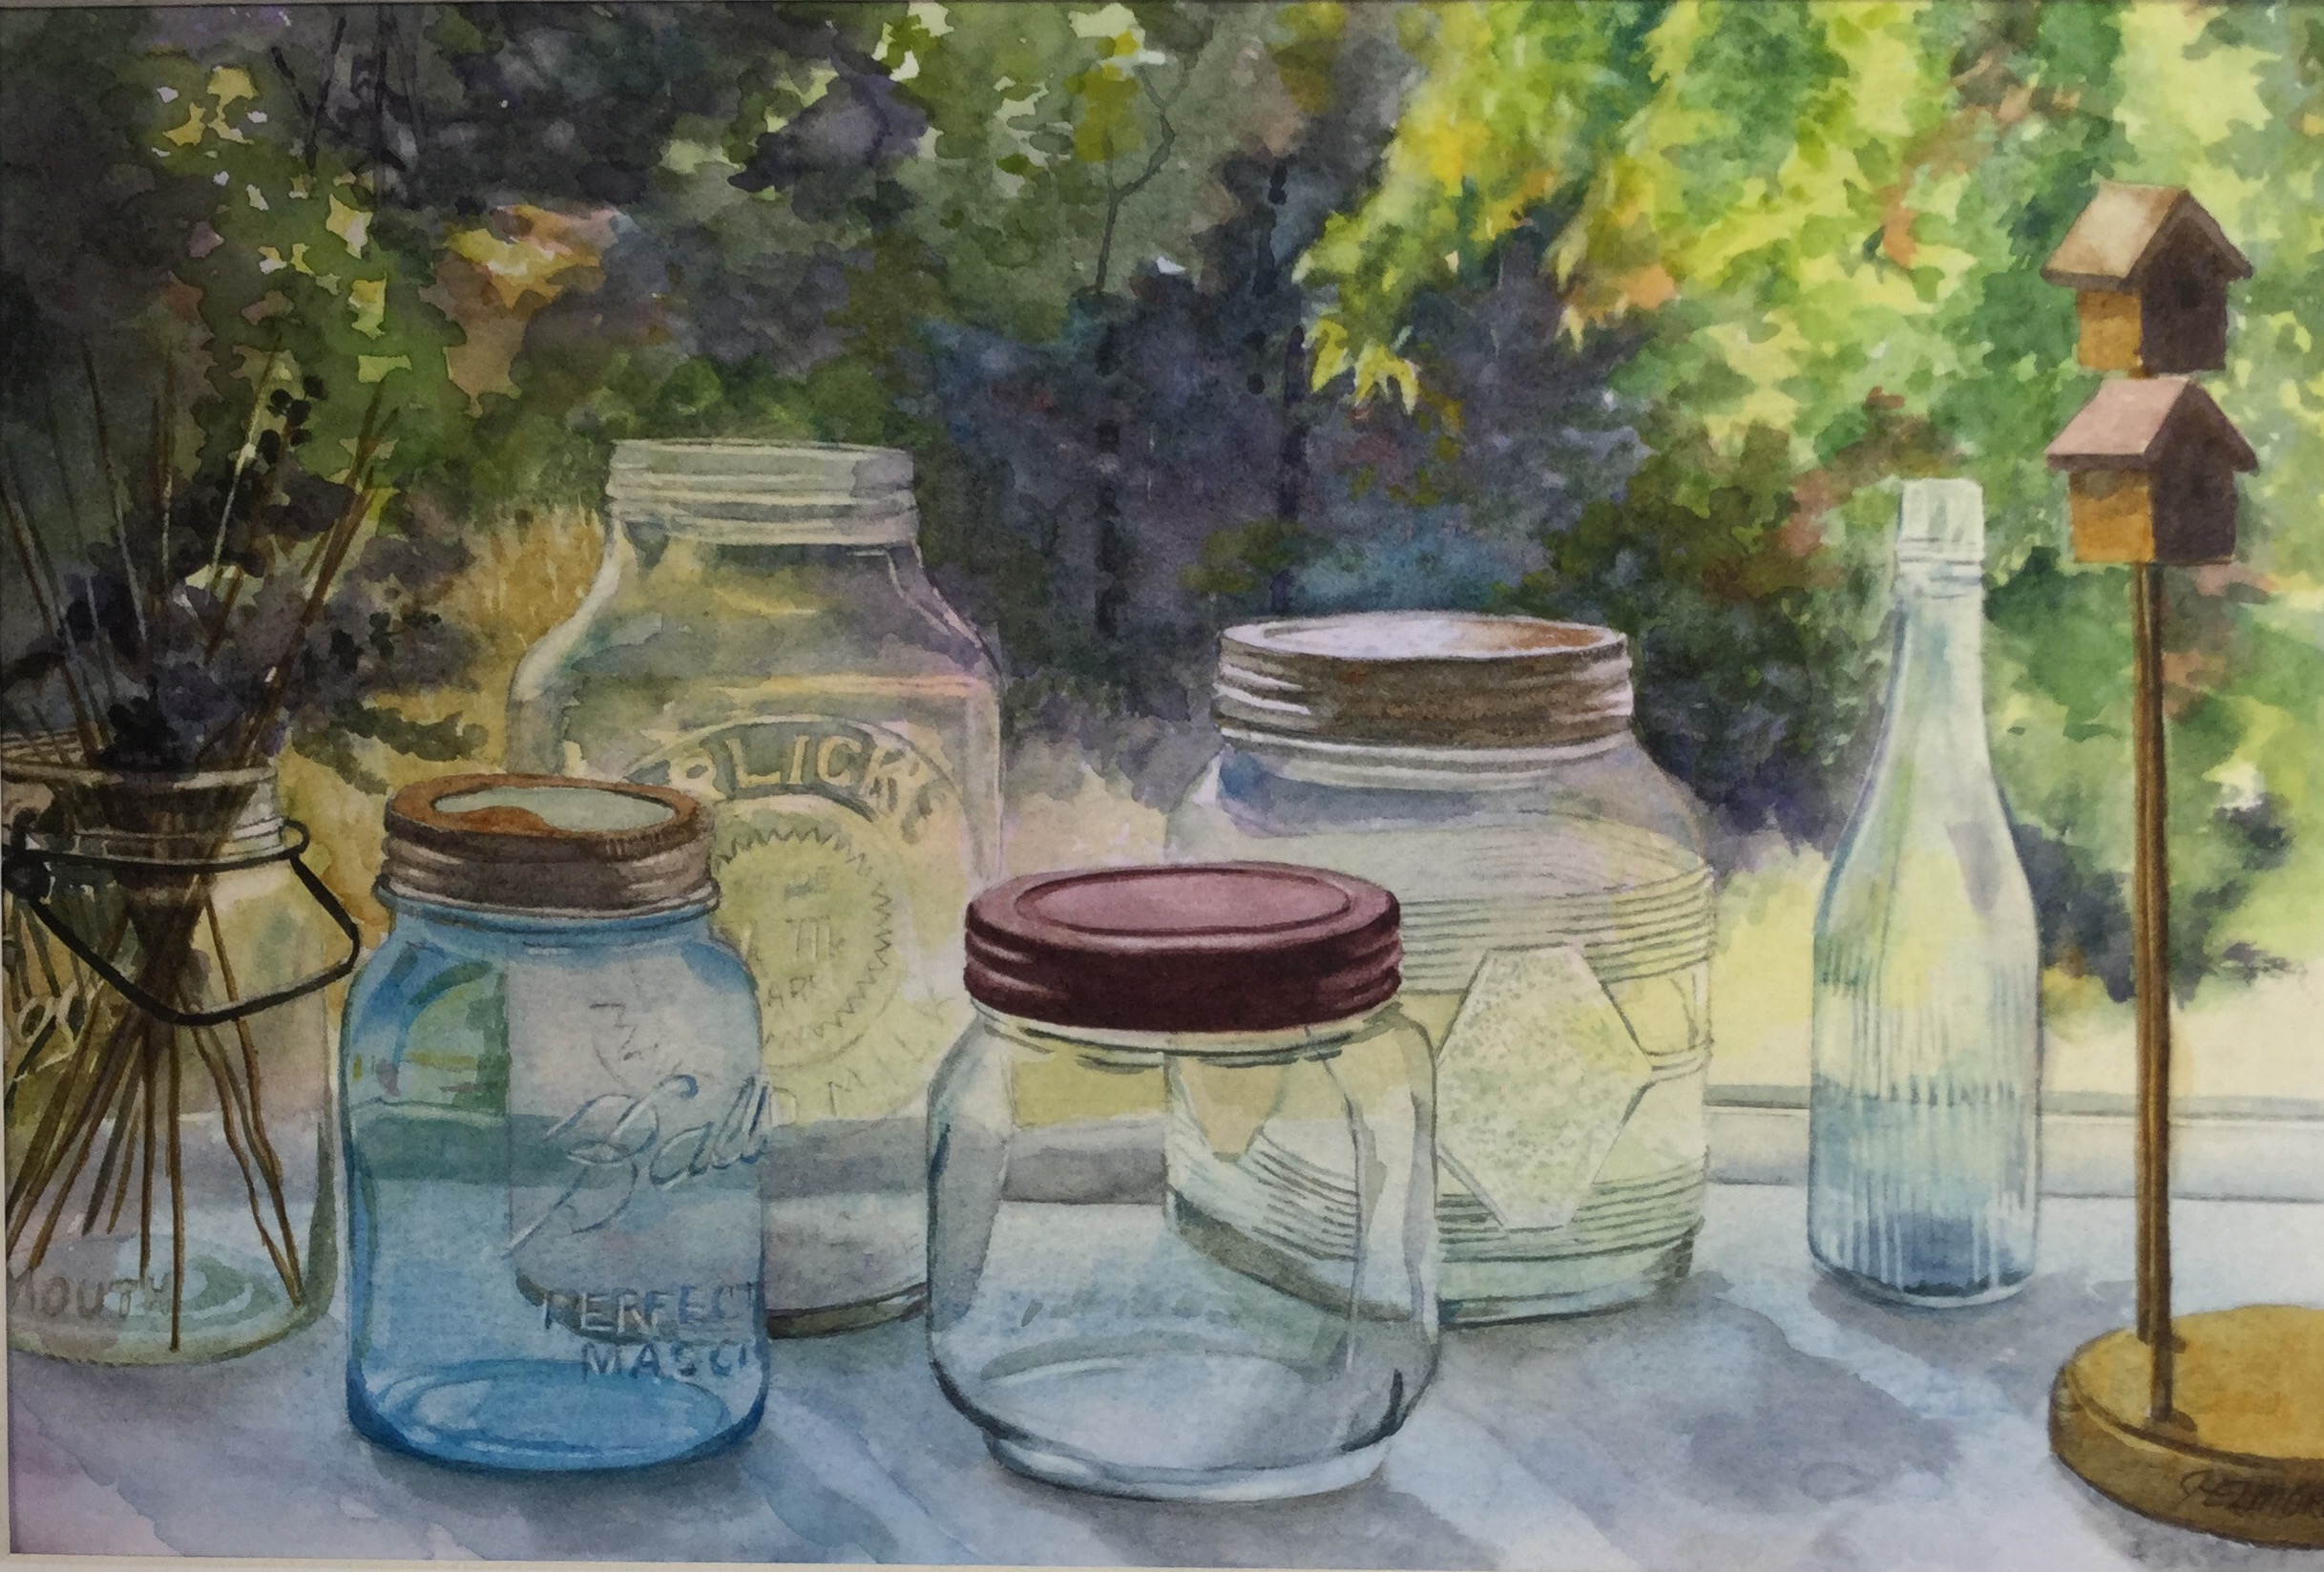 Sneak Preview 2015 - Canning Jars